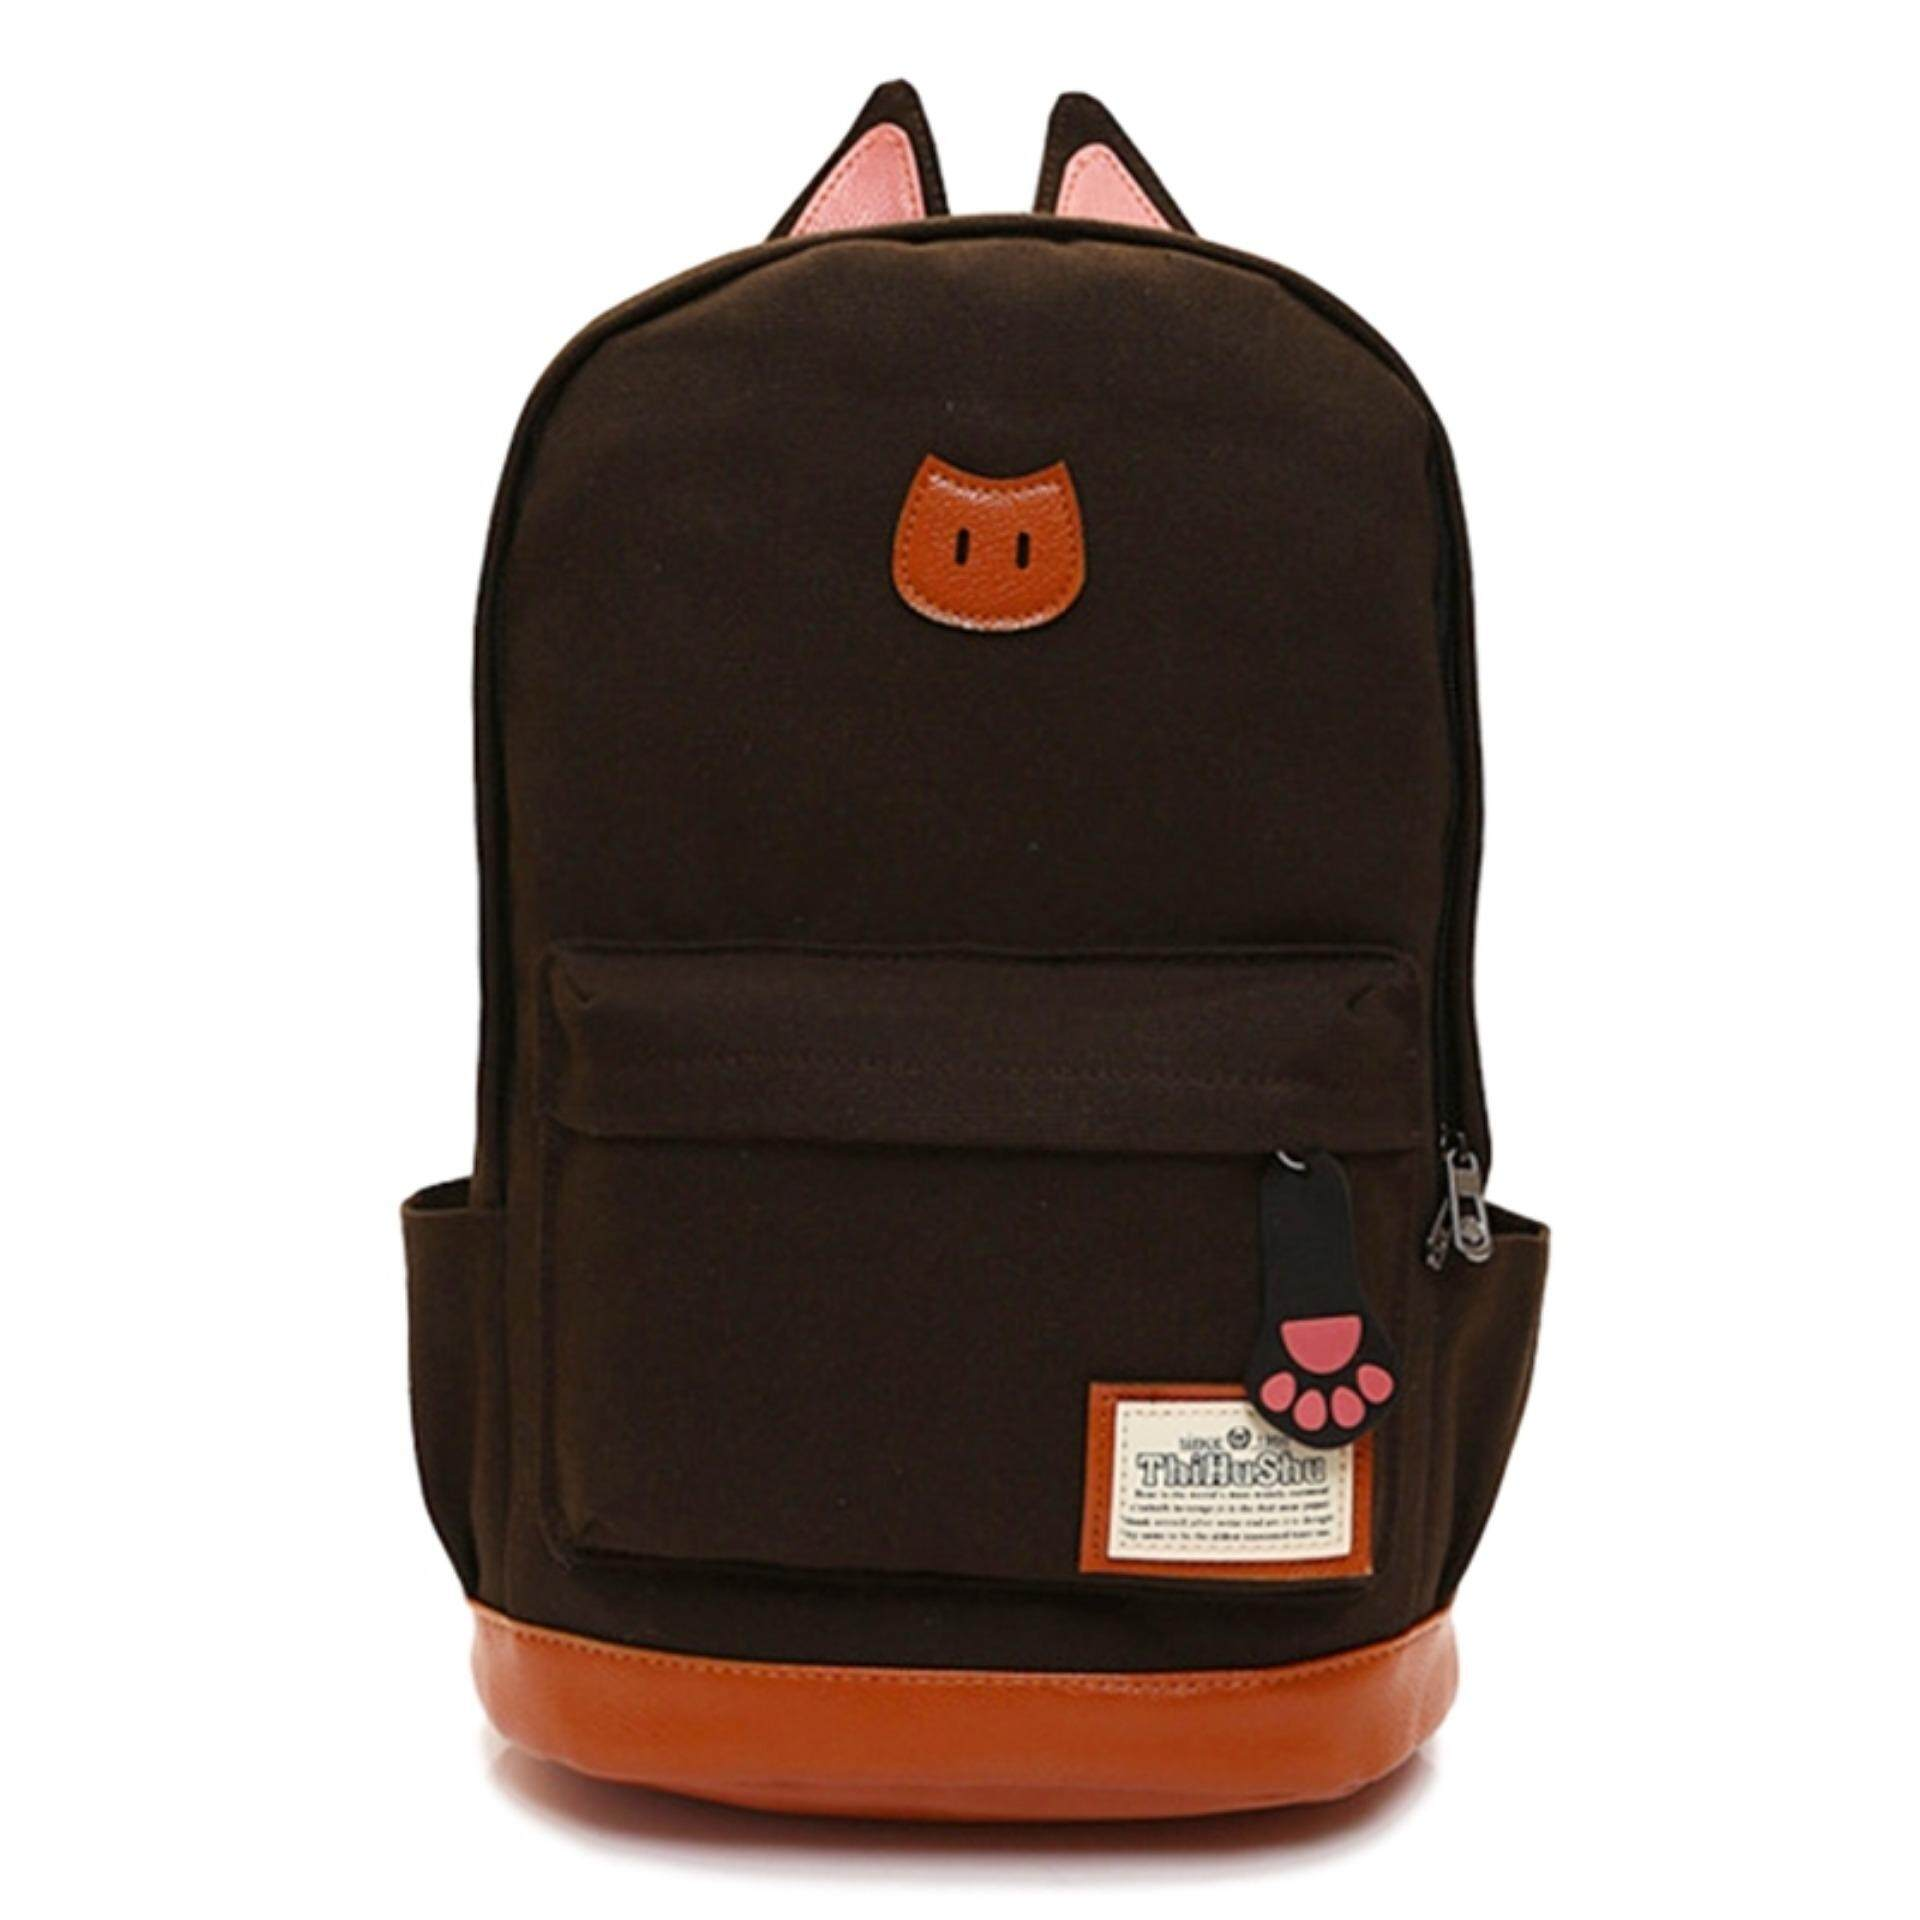 TEEMI Korean Kitten Cat Ear Canvas Backpack Casual Travel Laptop School Bag Leather Lash Tab - Brown